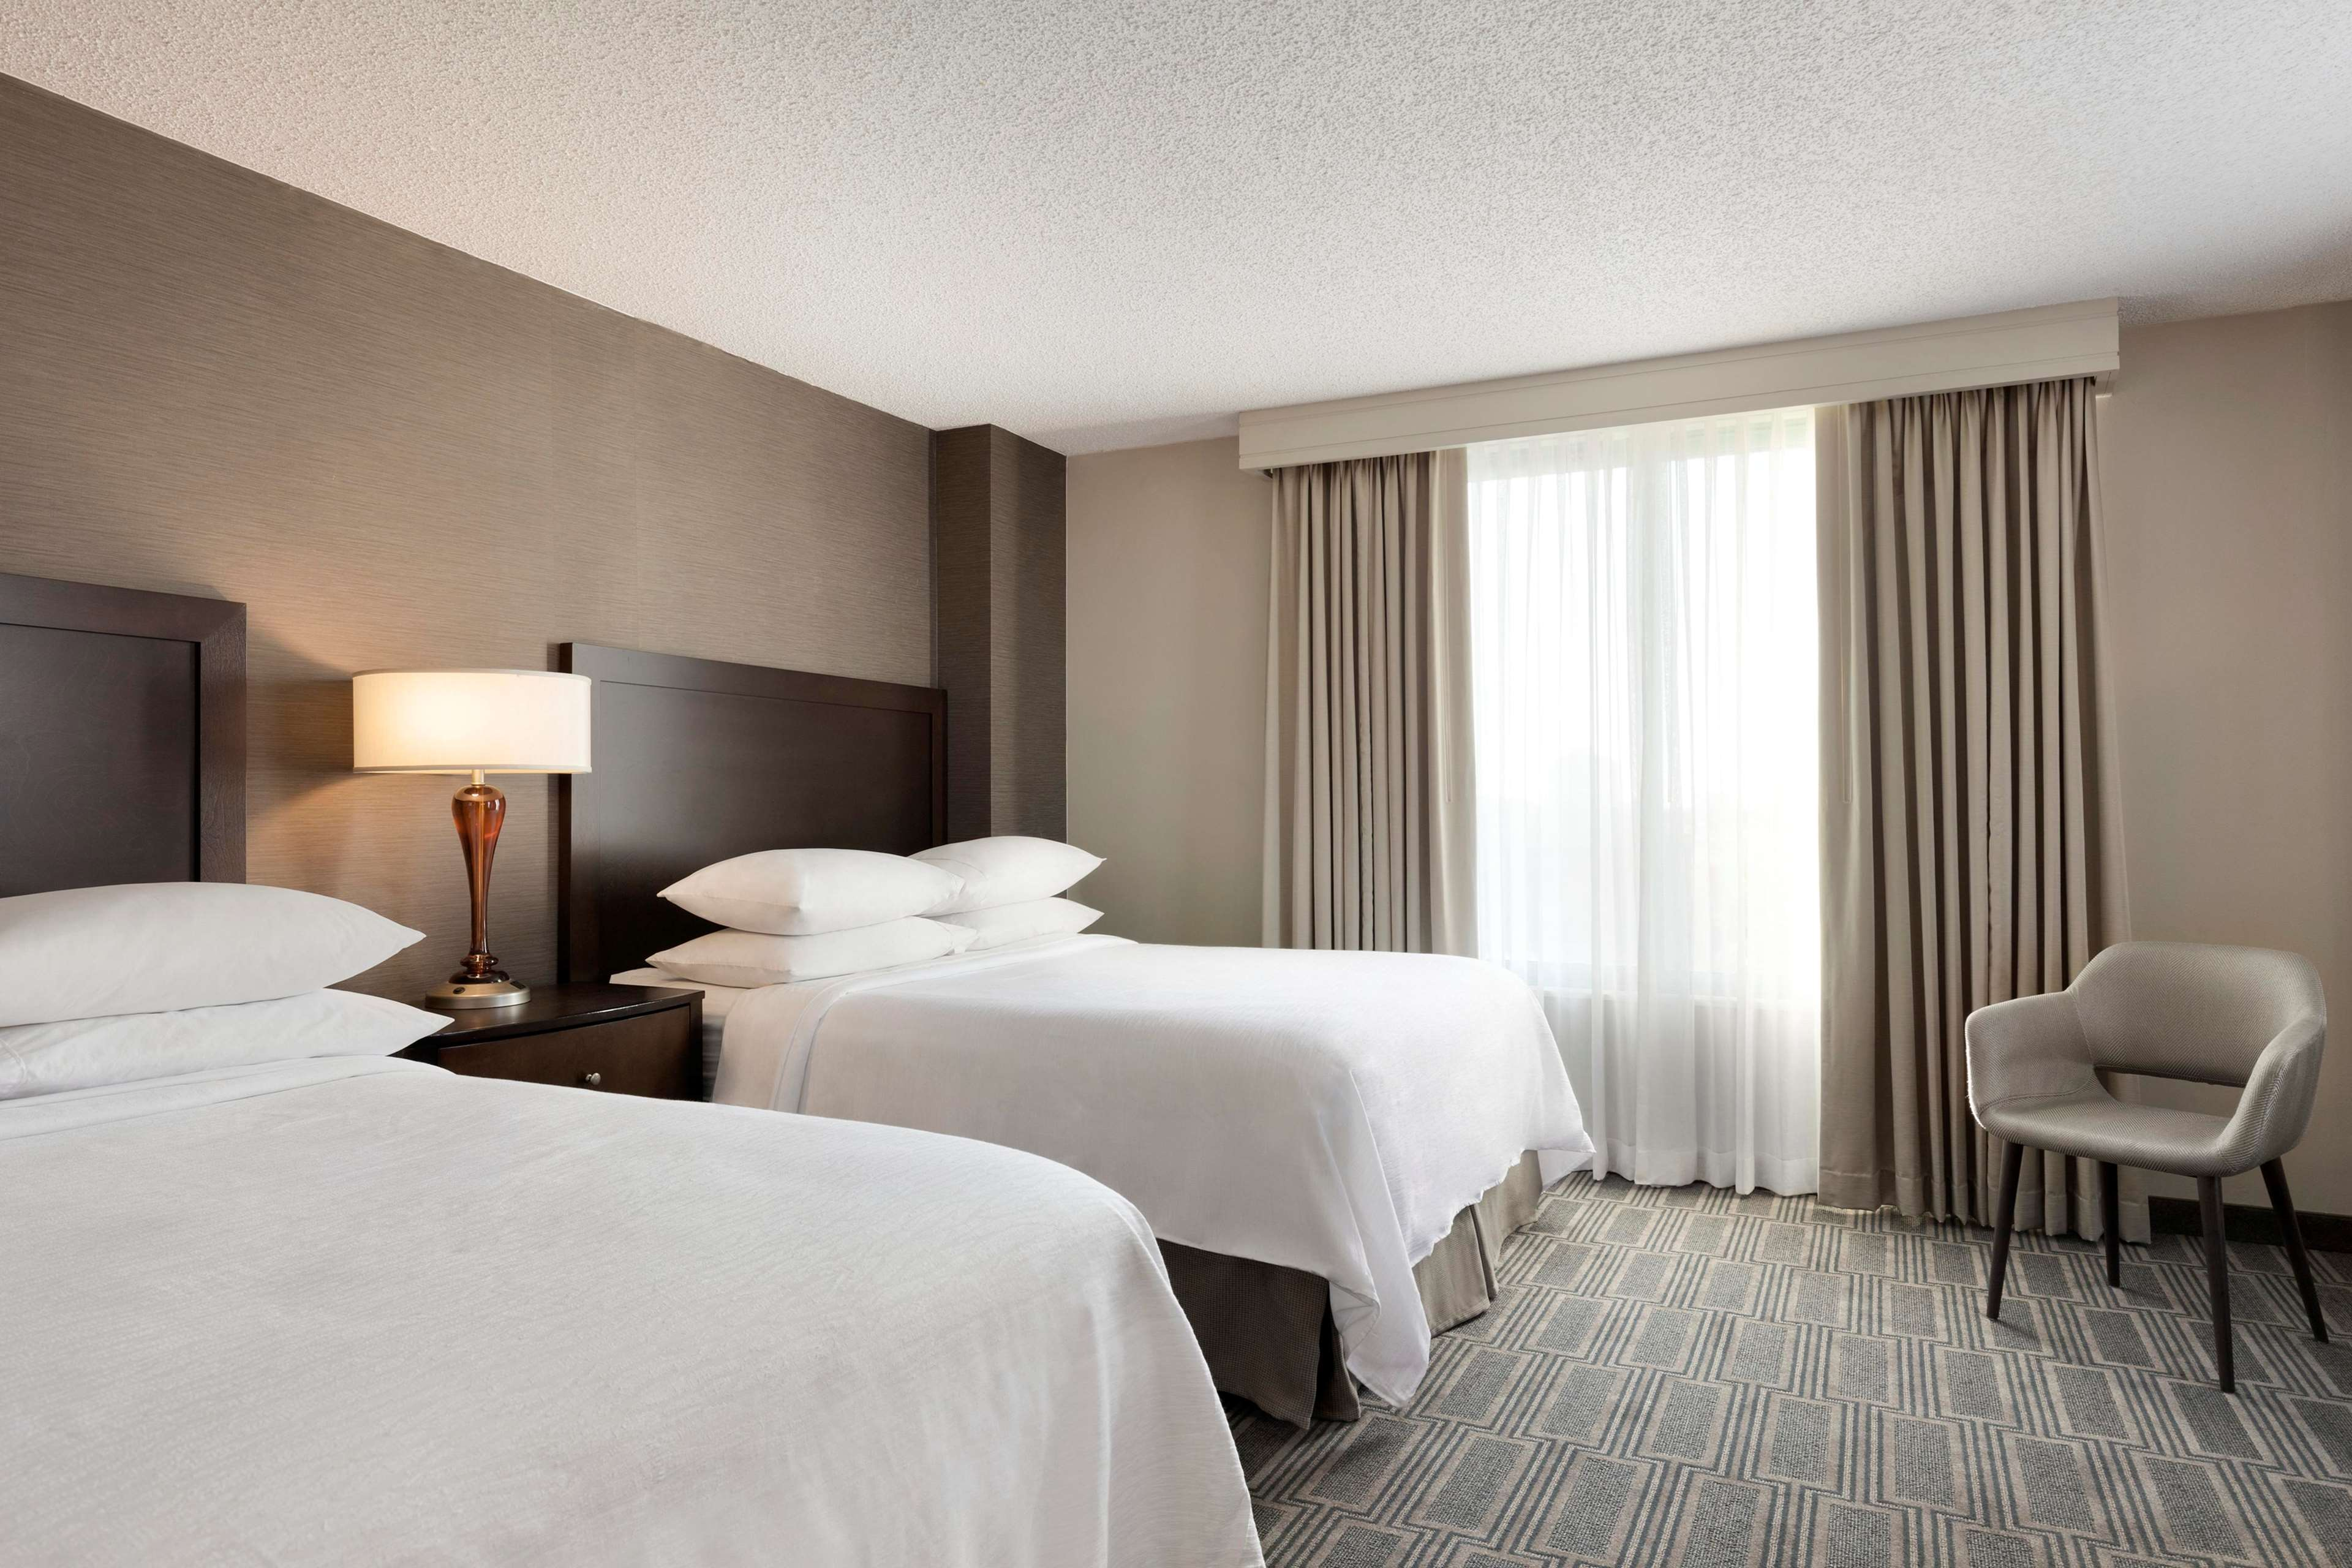 Embassy Suites by Hilton Chicago Lombard Oak Brook image 30